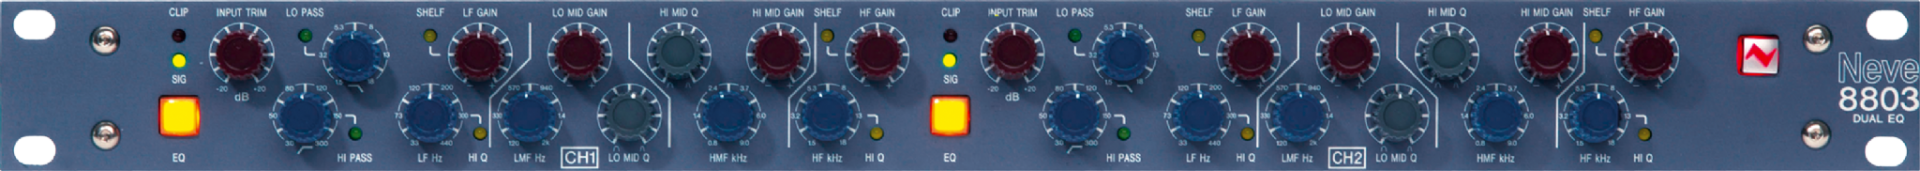 AMS Neve 8803 Dual Channel Equaliser